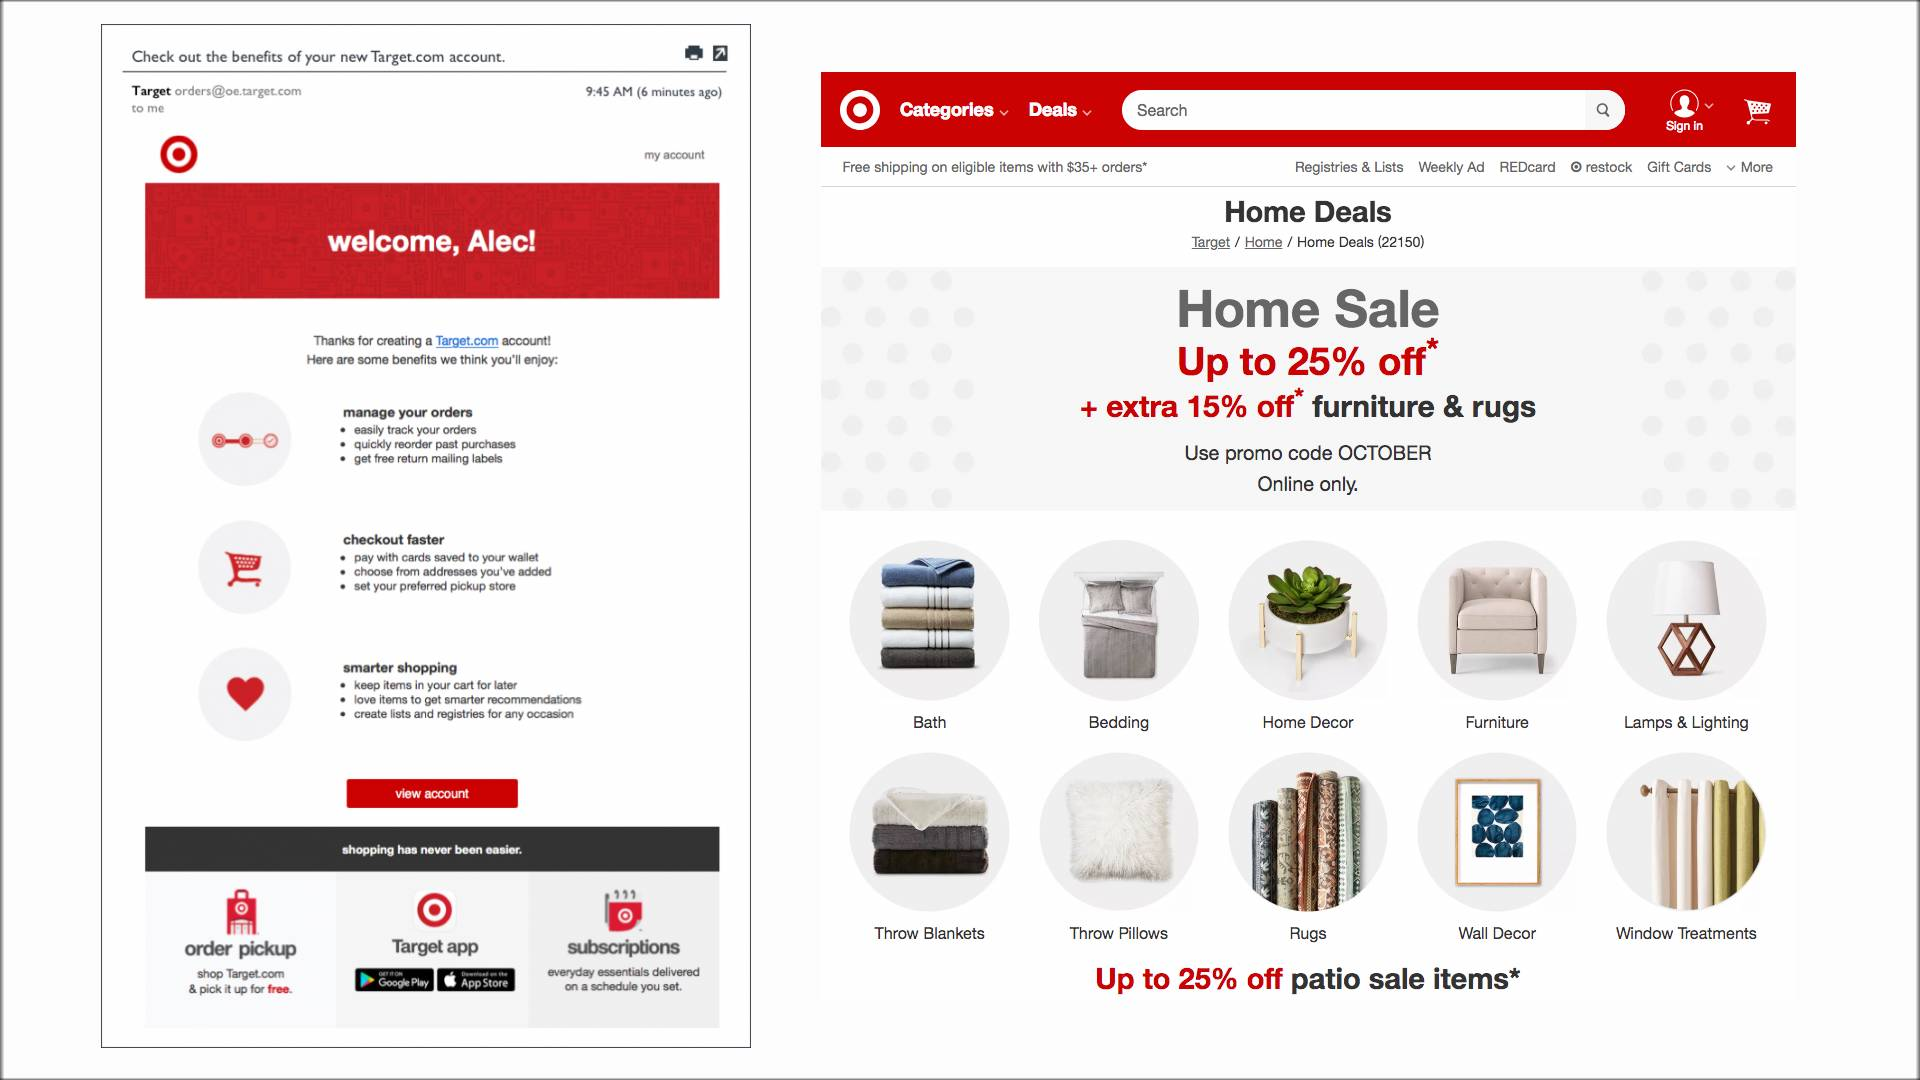 Target email compared to their website